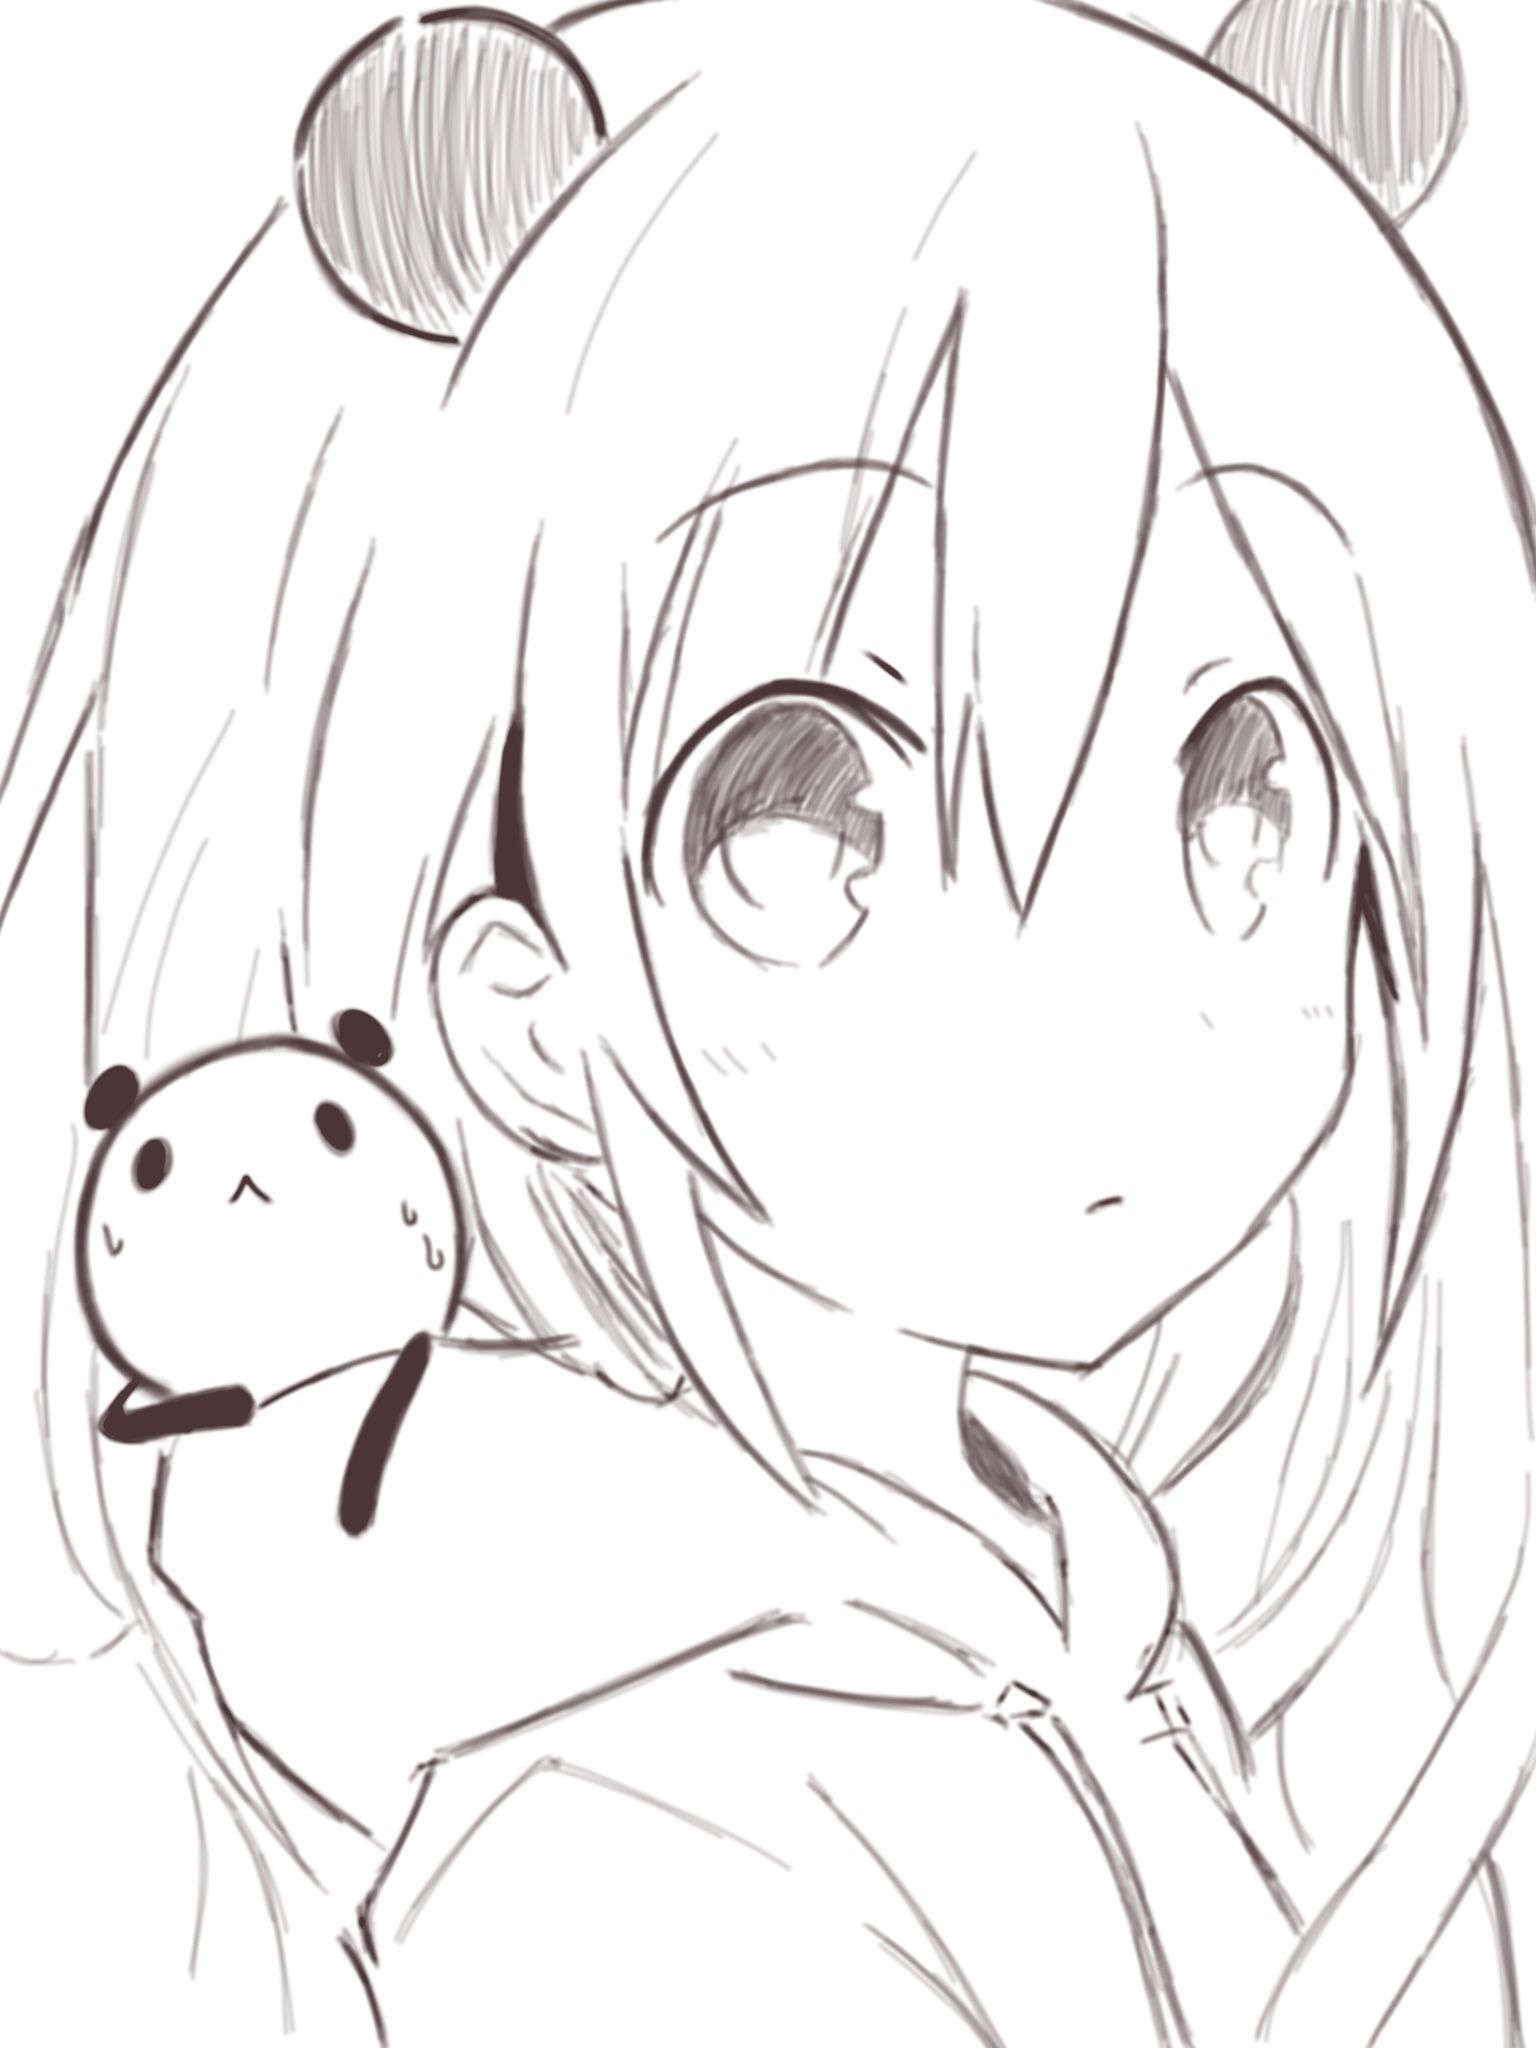 Anime Anime Girl Short White Hair Panda Kawaii